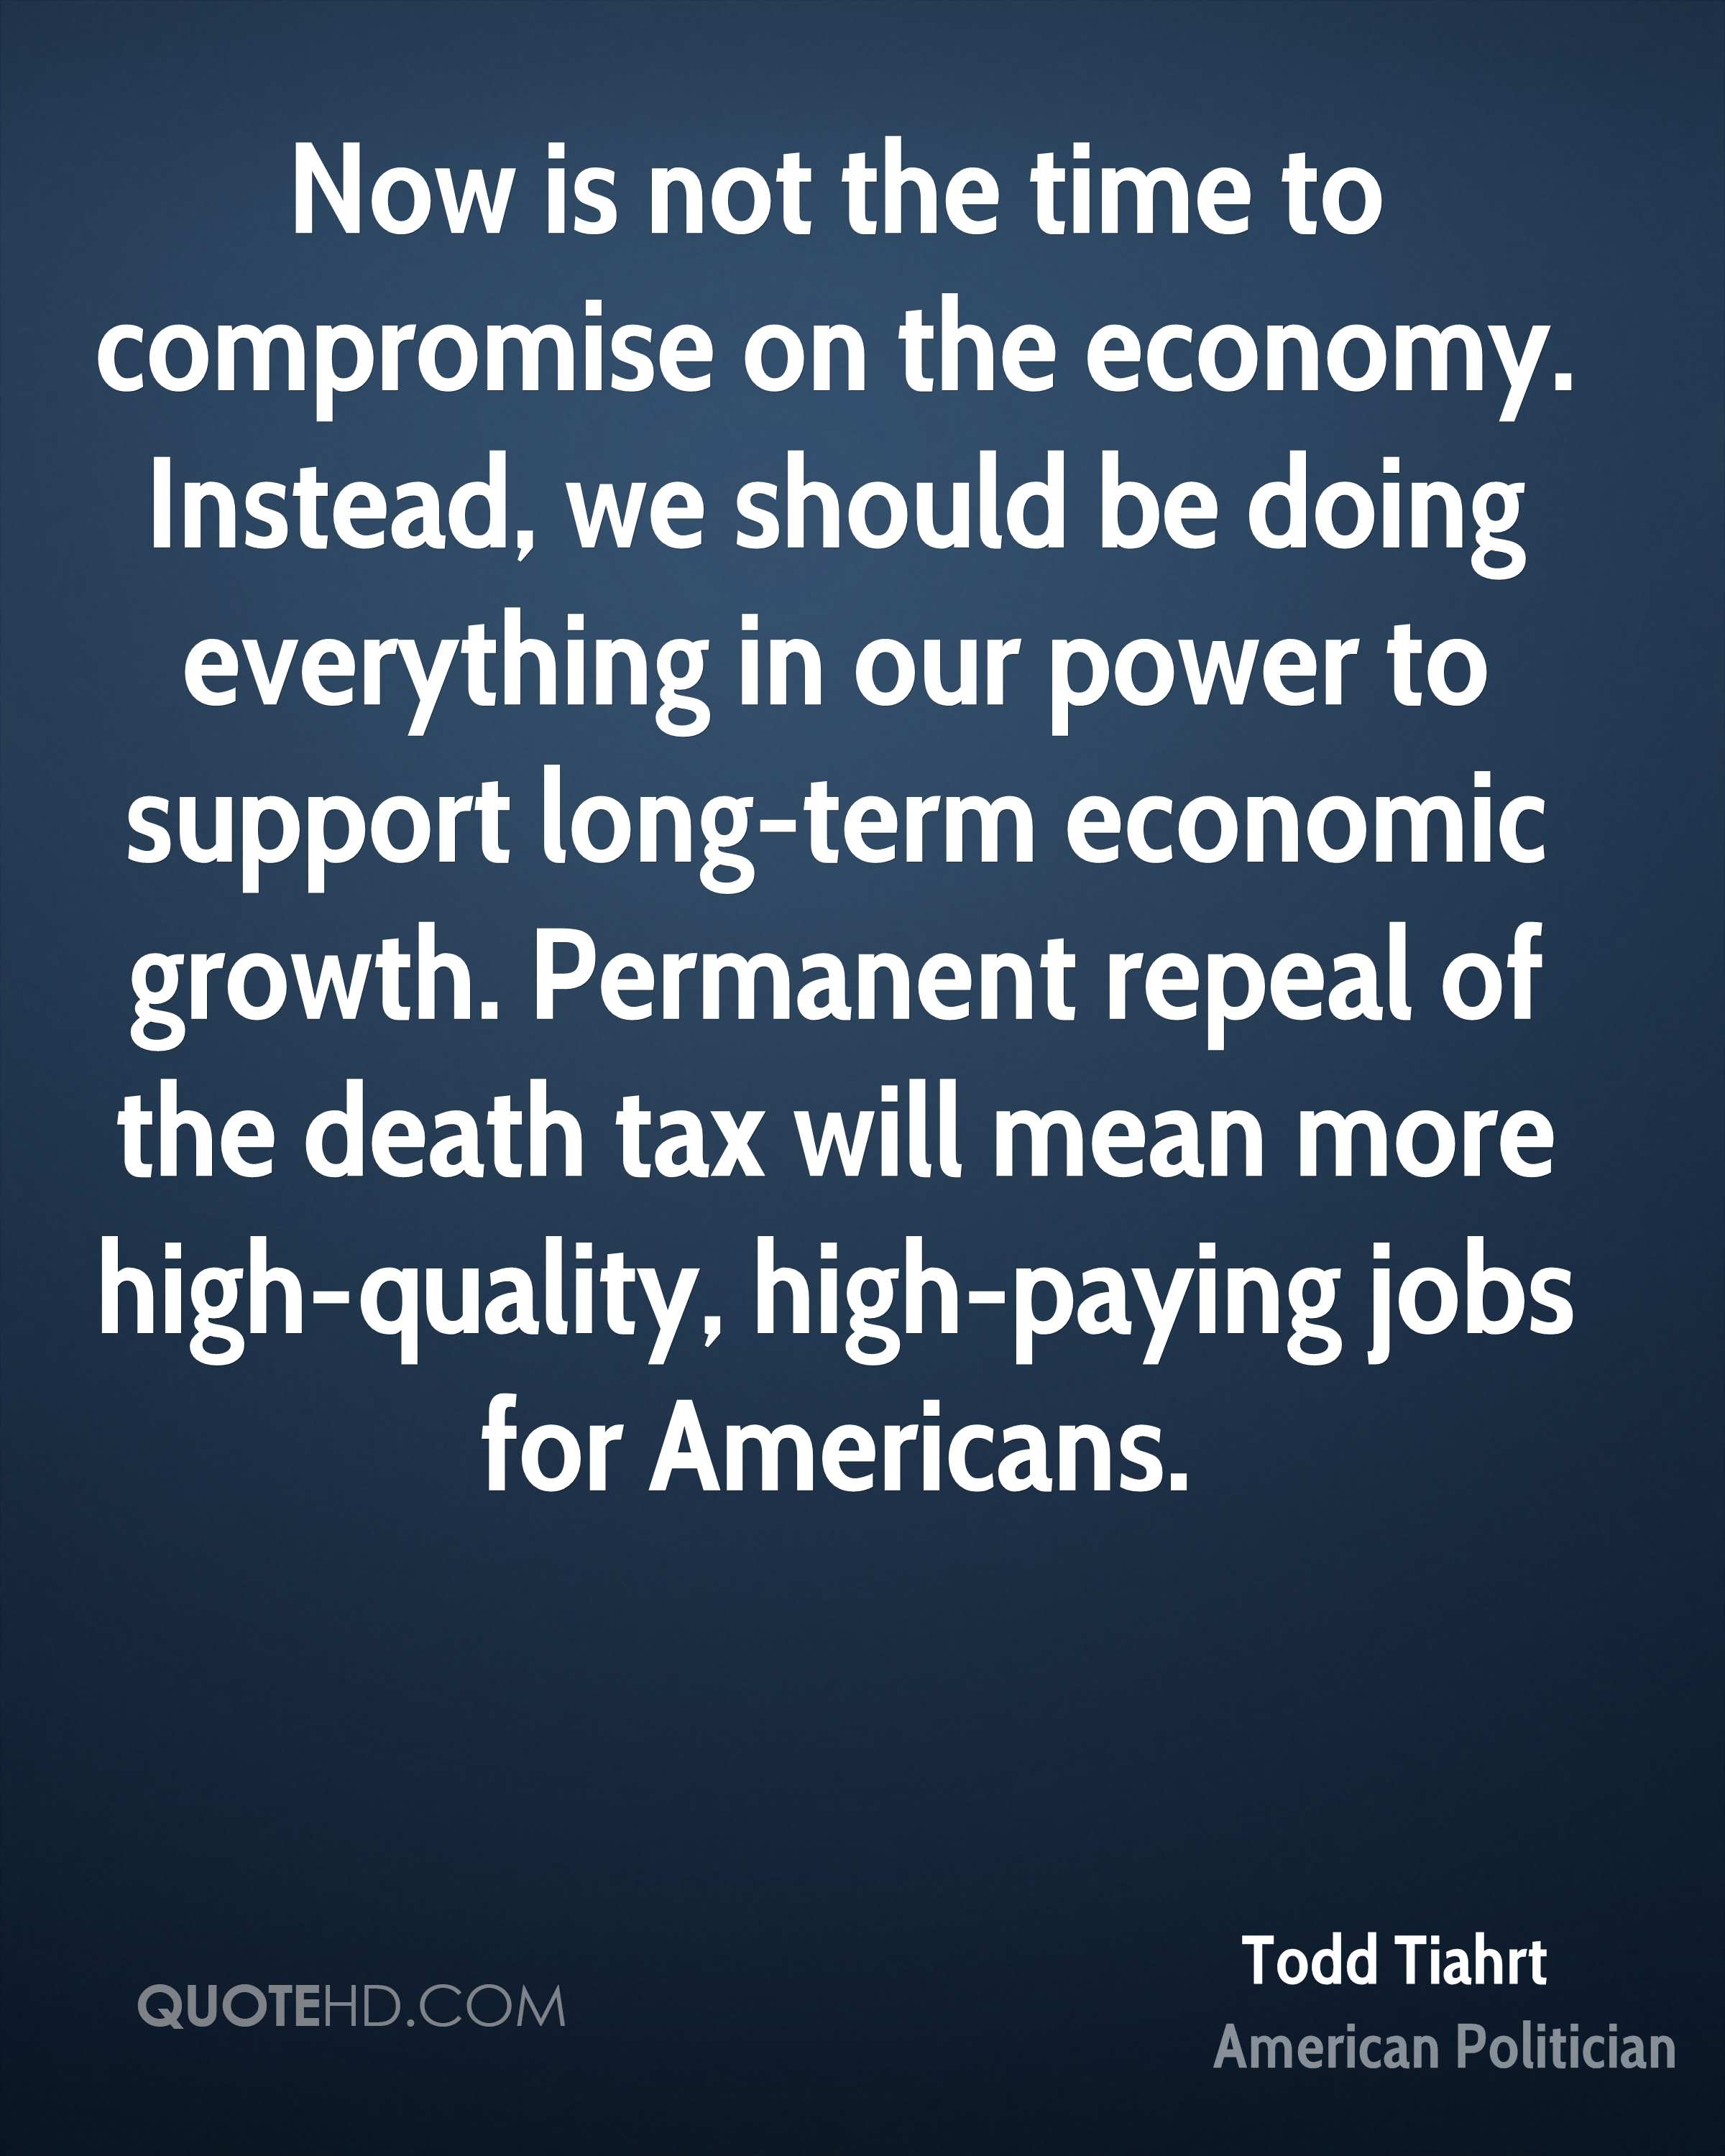 Now is not the time to compromise on the economy. Instead, we should be doing everything in our power to support long-term economic growth. Permanent repeal of the death tax will mean more high-quality, high-paying jobs for Americans.